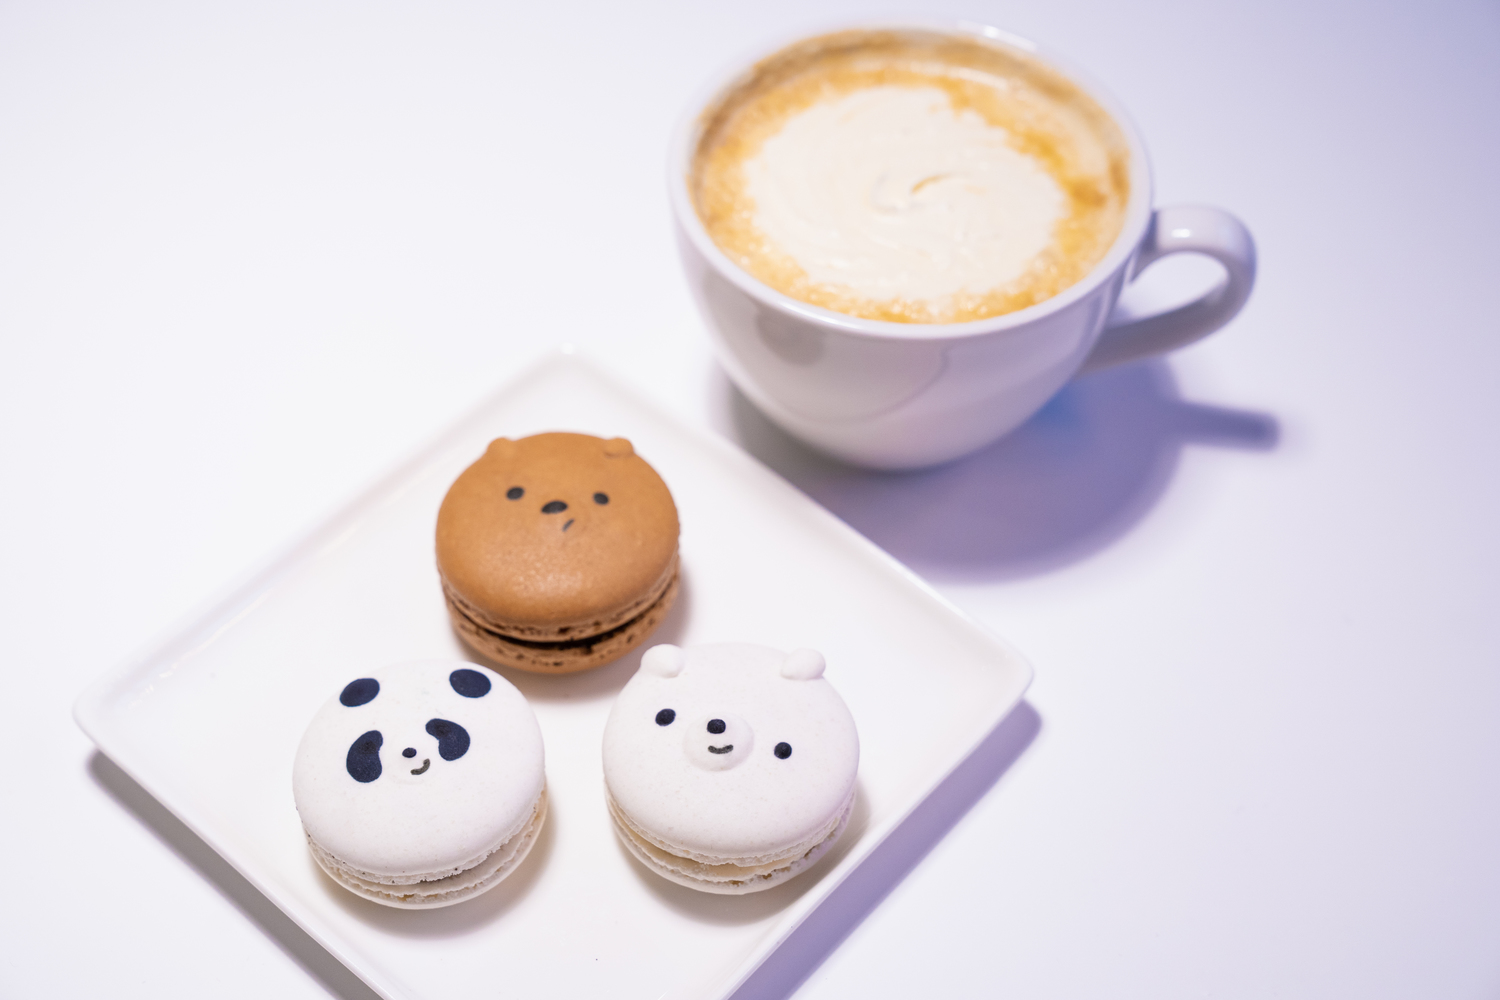 Coffee cup and three macaroons themed to look like bears